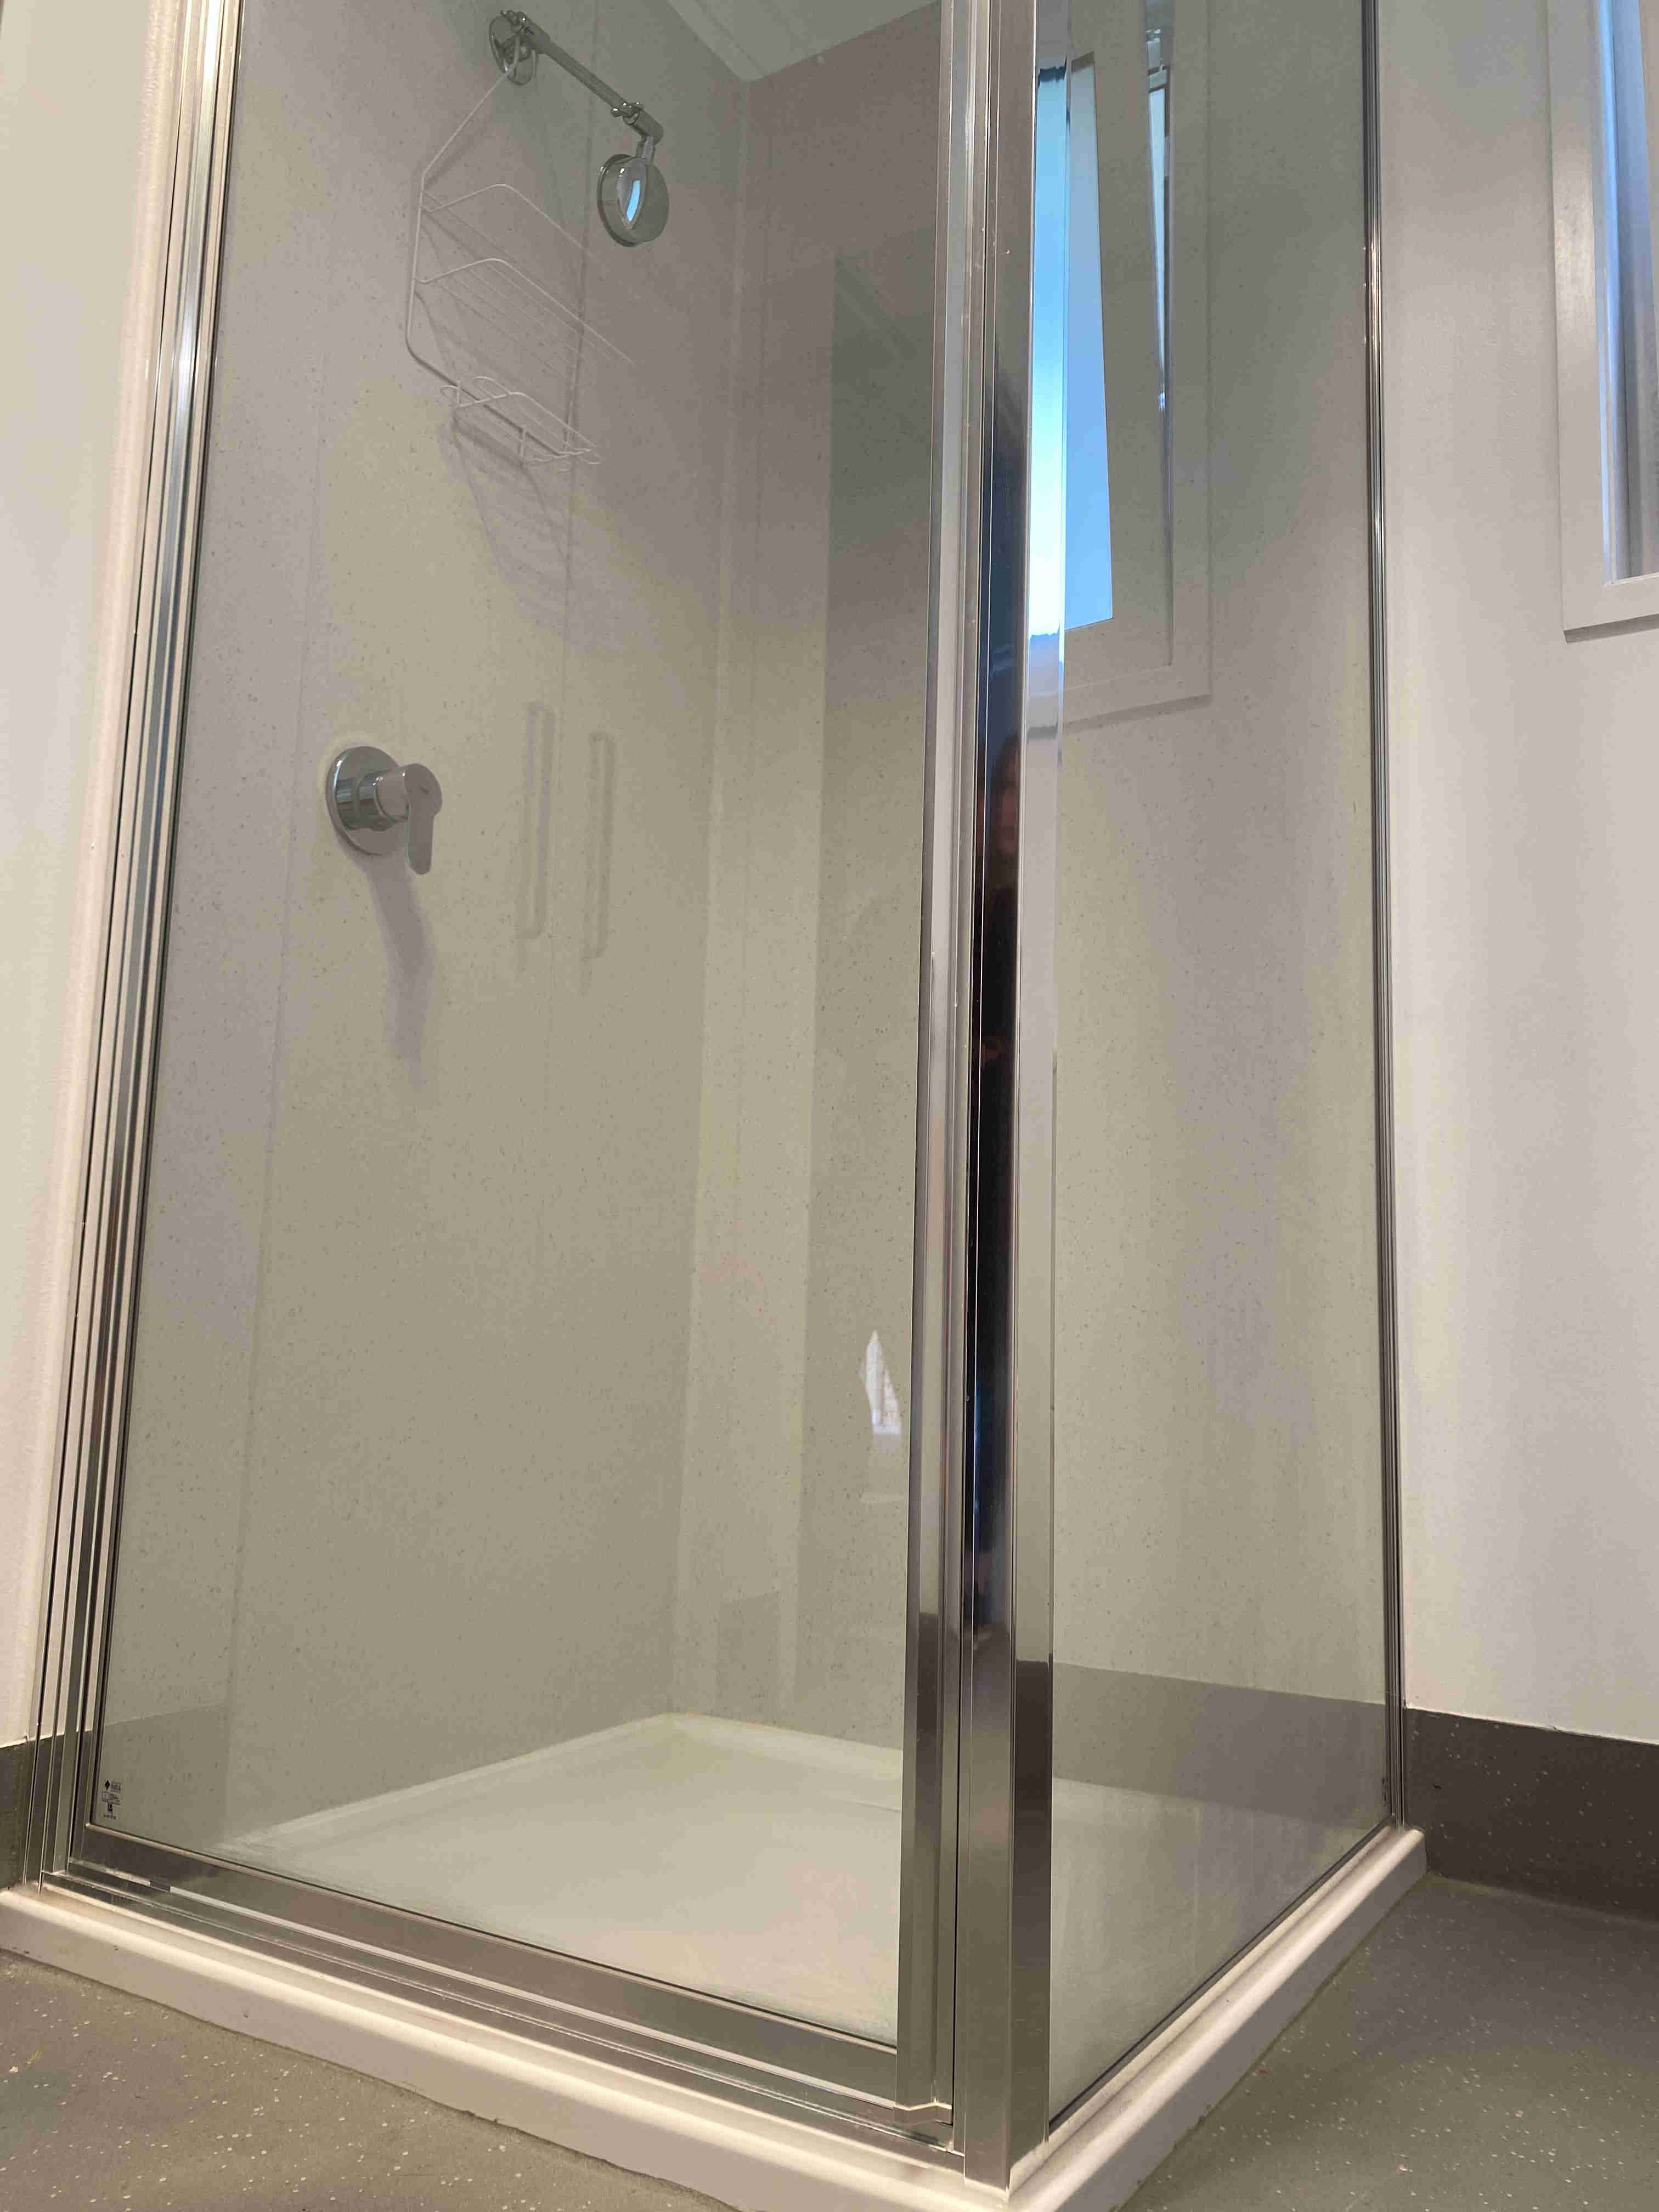 Shower in bathroom of one bedroom apartments